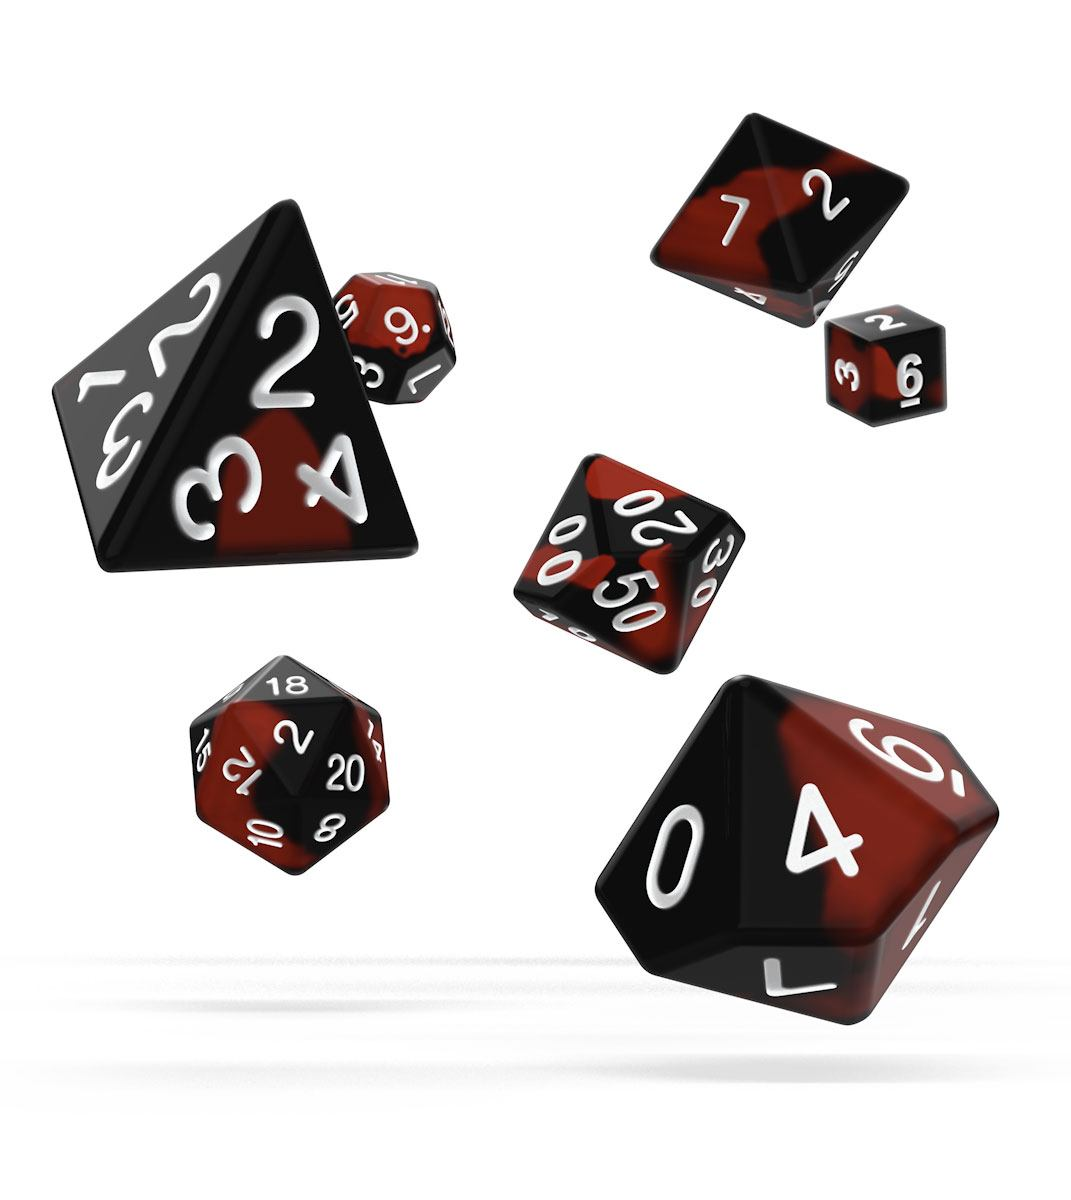 Kocka Set (7) - Oakie Doakie Dice RPG Set Glow in the Dark - Lava